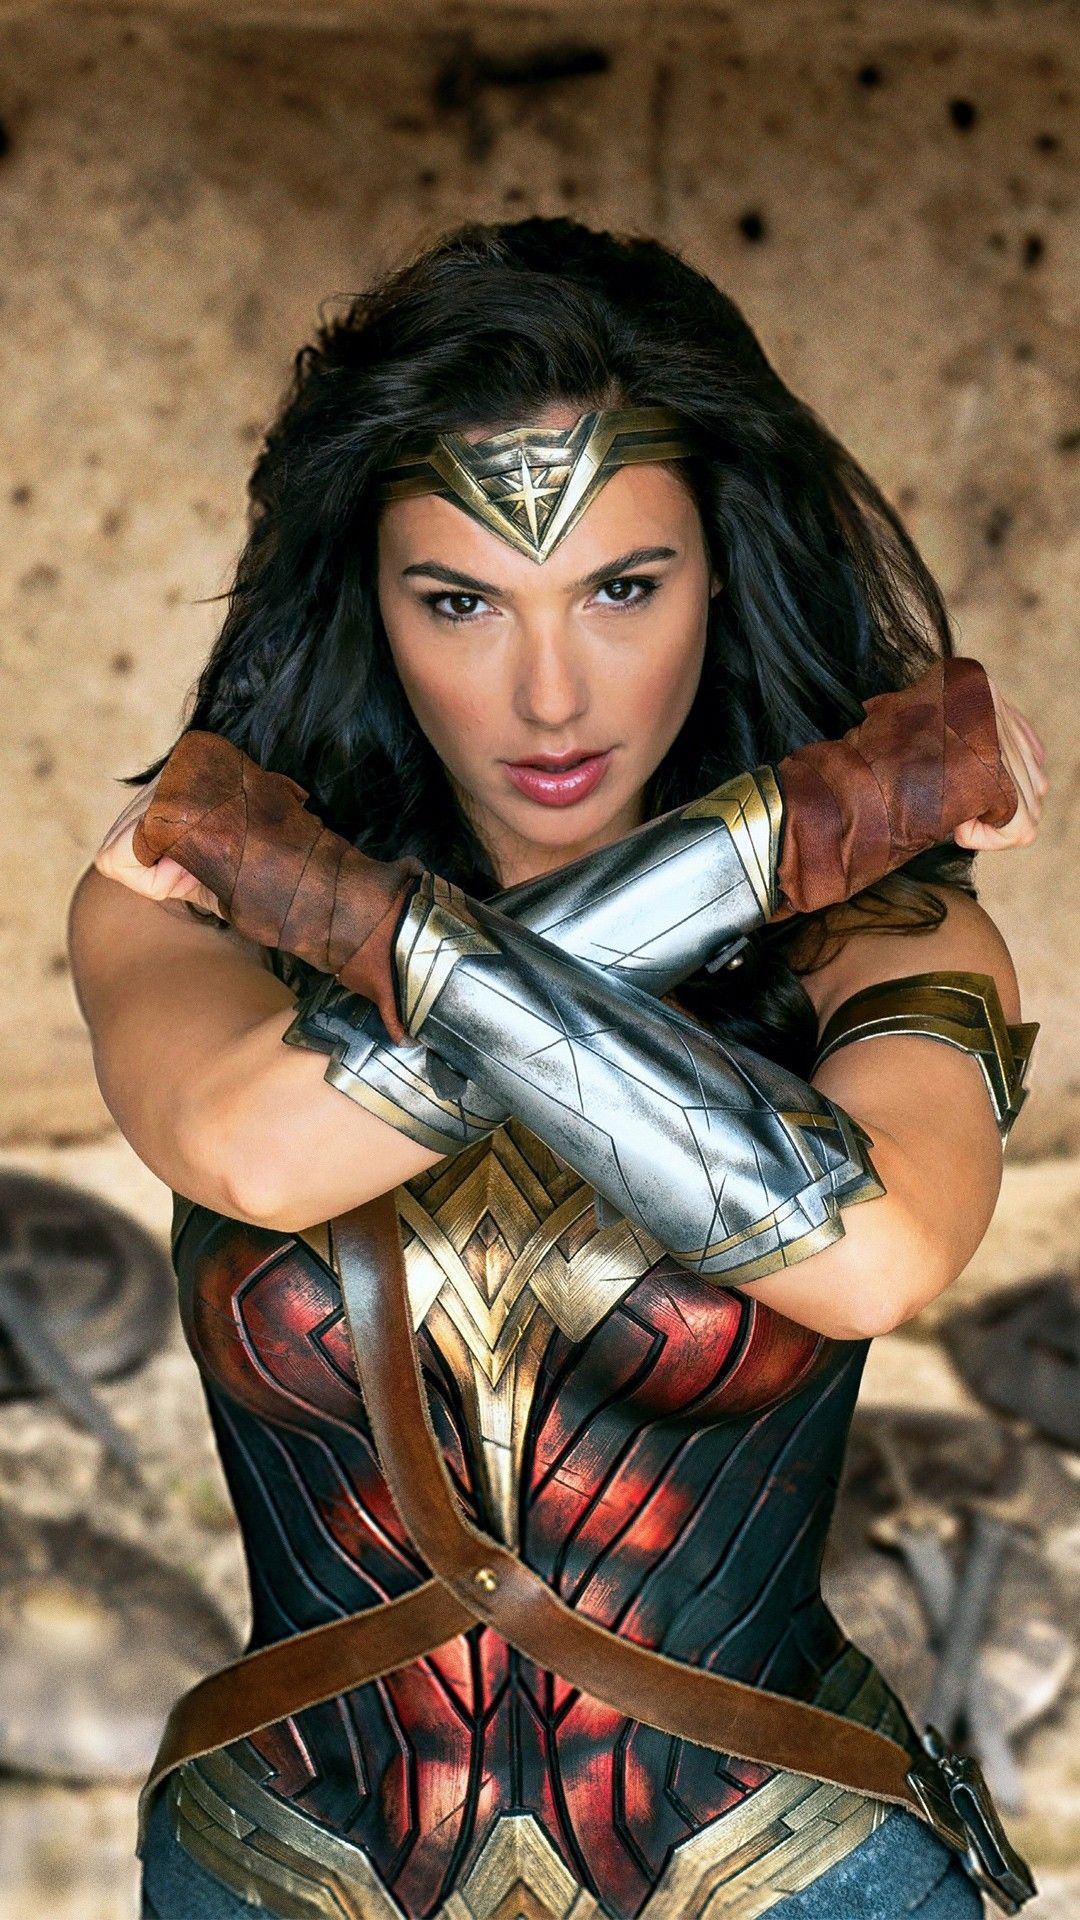 Iphone X Wallpaper Wonder Woman Best Iphone Wallpaper Gal Gadot Wonder Woman Wonder Woman Cosplay Wonder Woman Movie